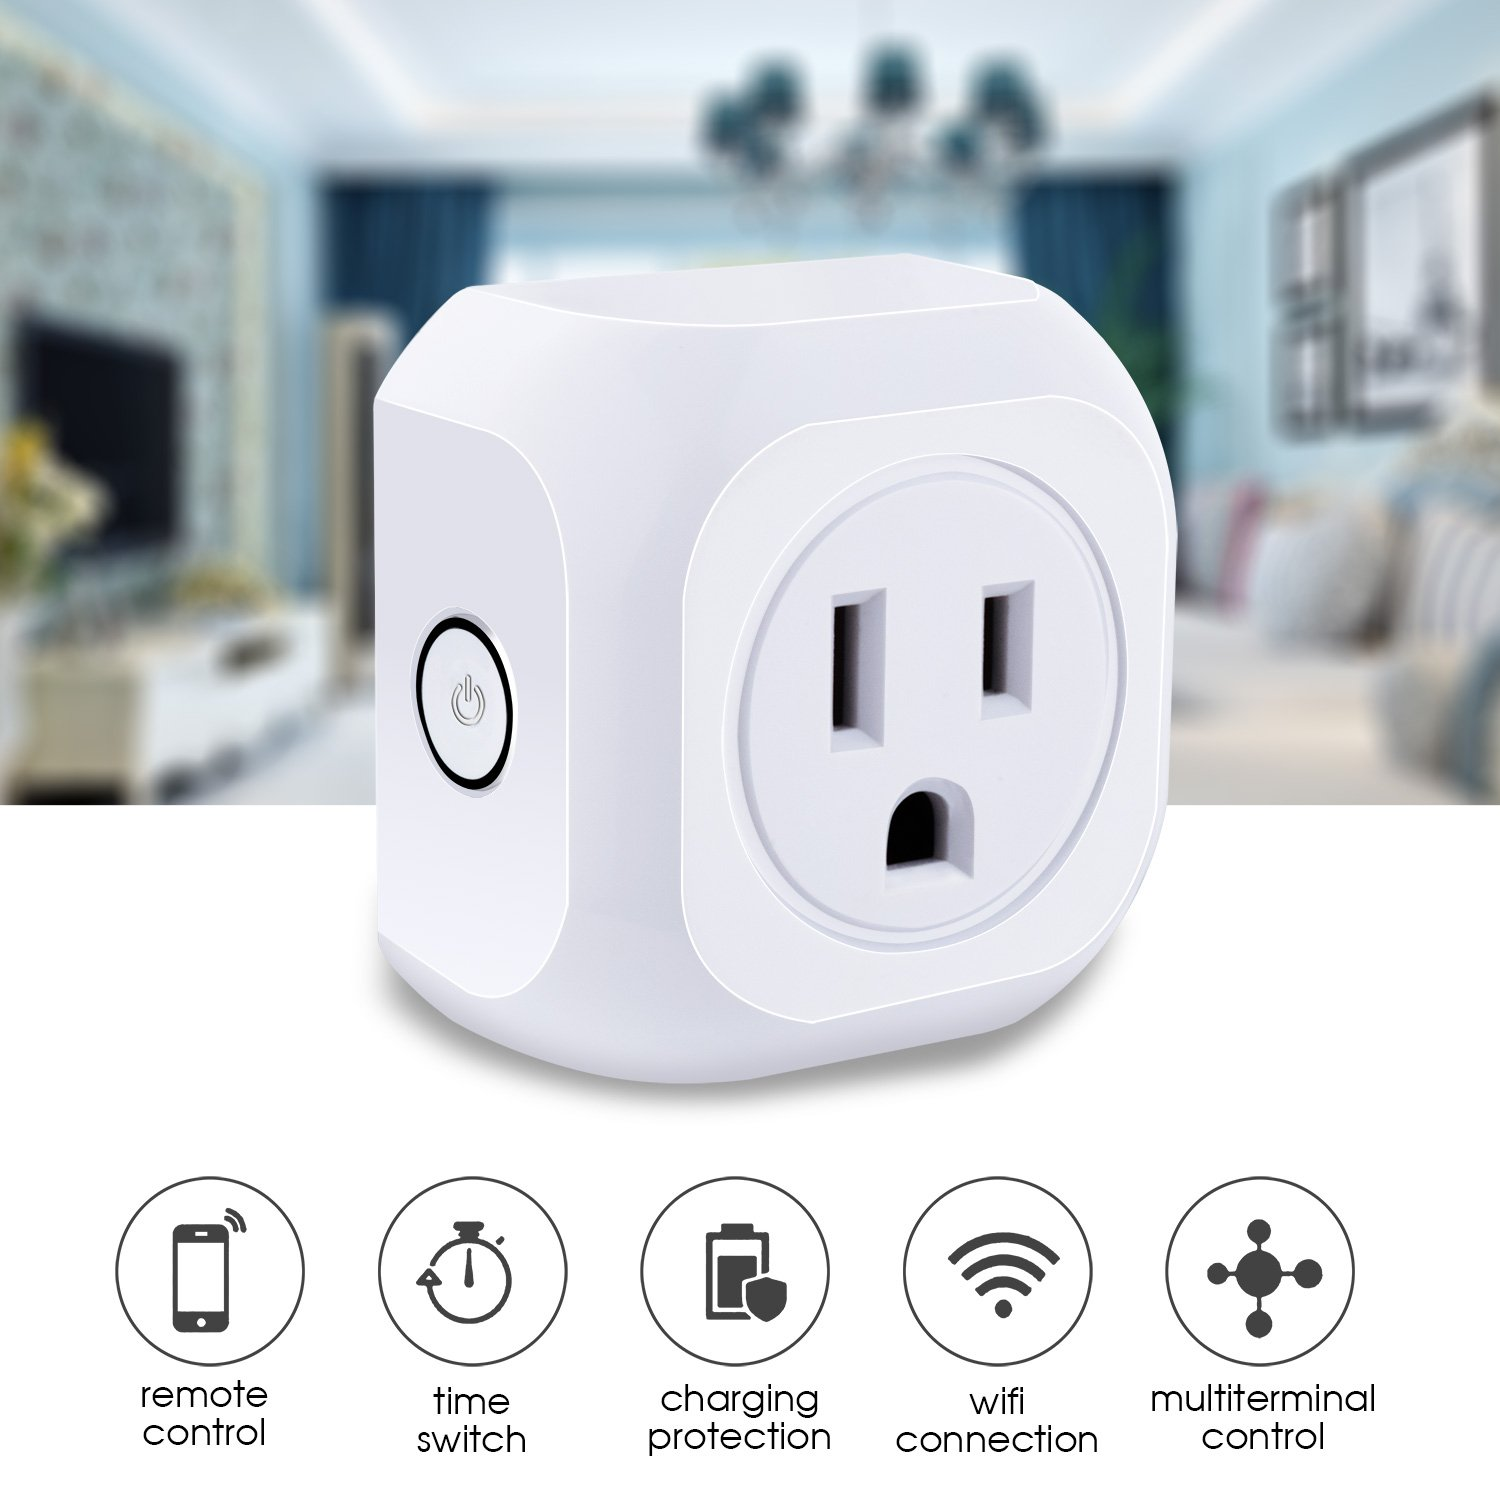 KOOTION 4 Pack Wifi Smart Plug Mini Outlet with Energy Monitoring, Compatible with Alexa Echo and Google Assistant, No Hub Required, ETL Listed, White by KOOTION (Image #2)